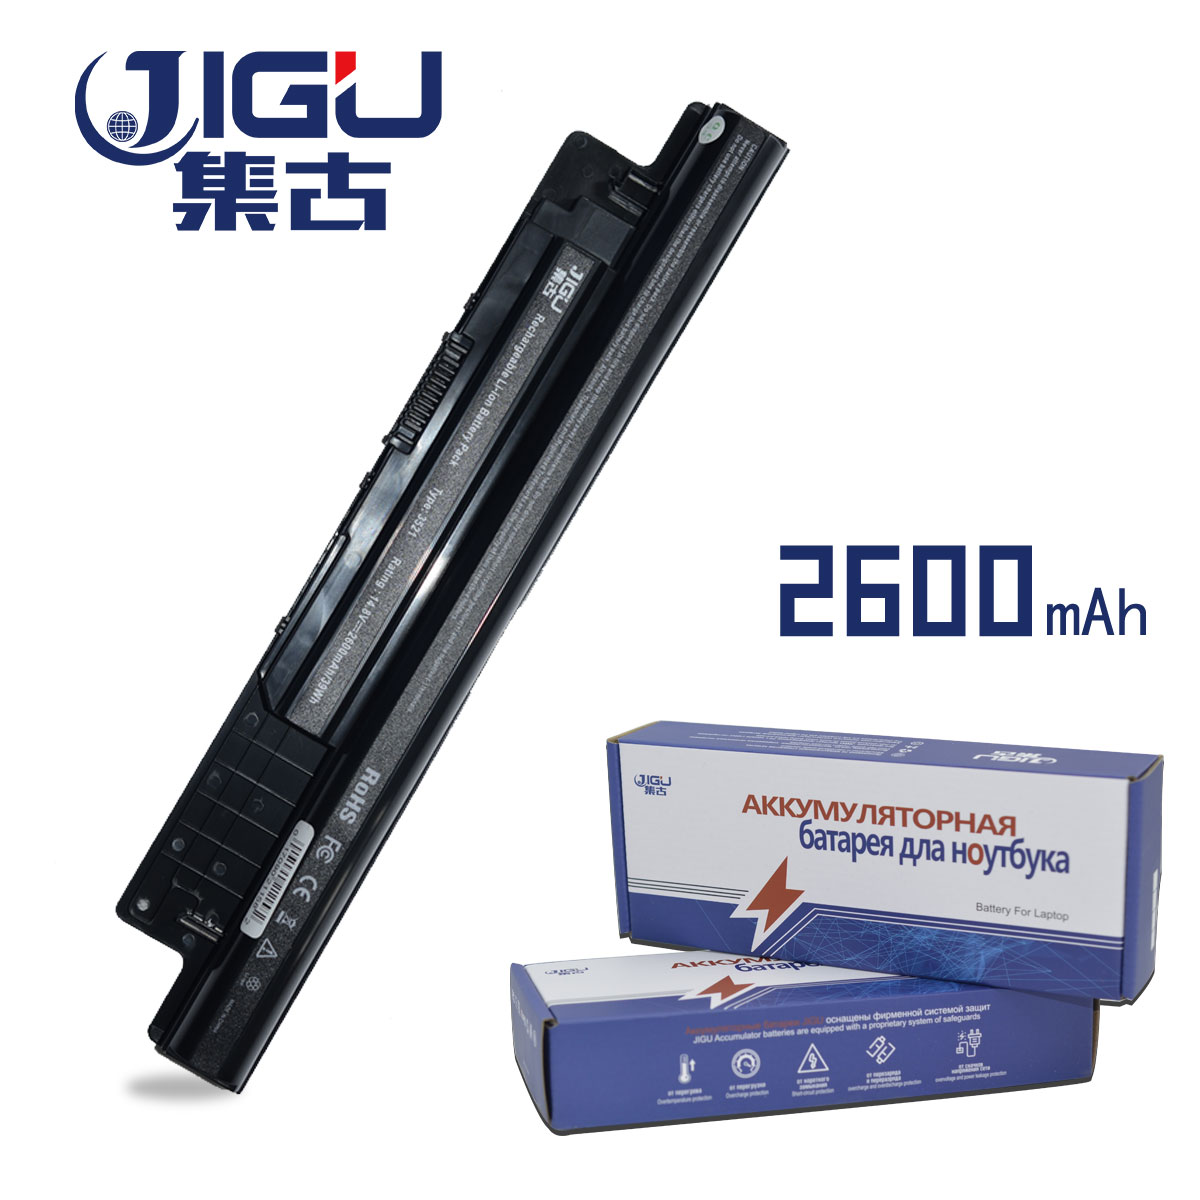 все цены на JIGU Laptop Battery For Dell FW1MN 6KP1N G019Y MR90Y For Inspiron 15R (5521) 17 3721 for Vostro 14 15 3000 3449 2421 3549 2521 онлайн